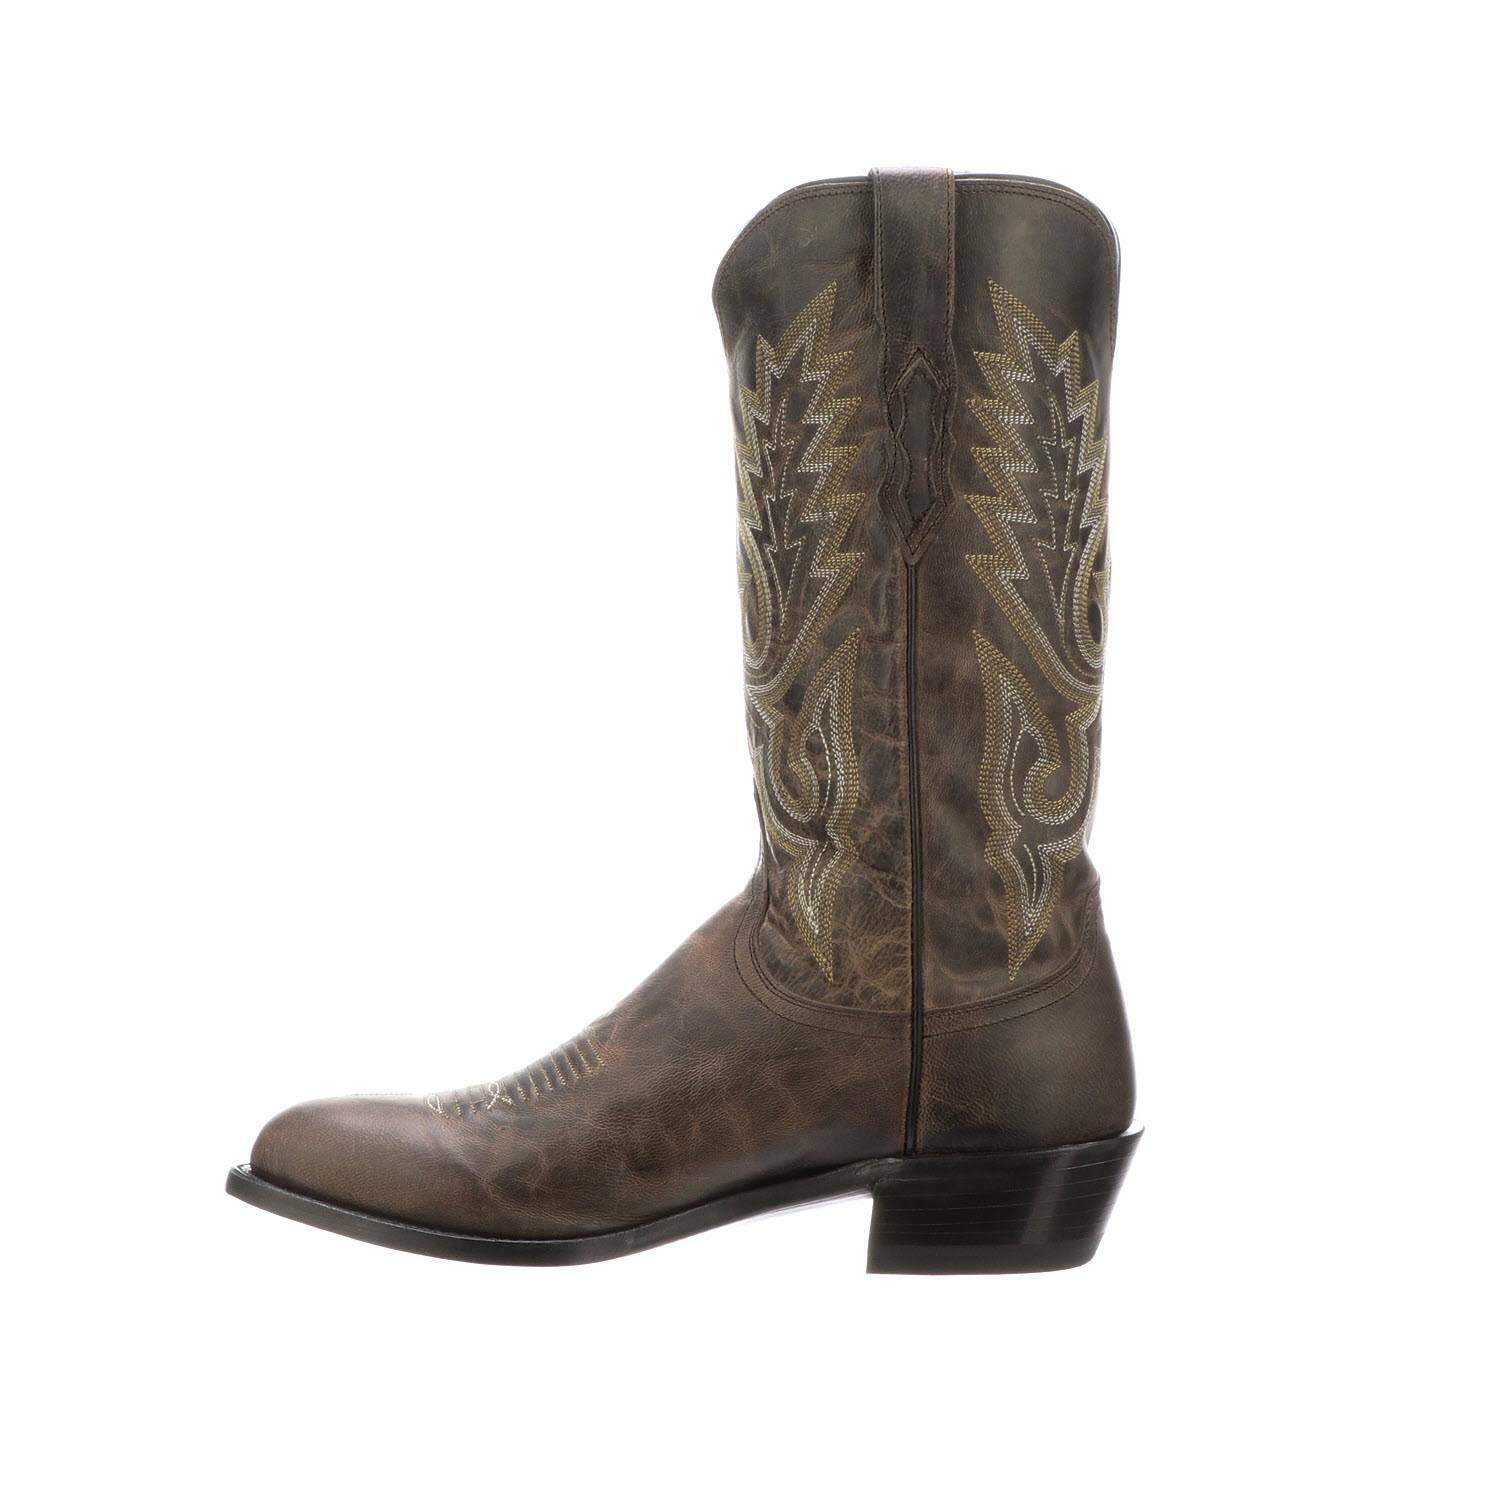 Handmade Men's braun Shaded Leather Cowboy Mexican Western Taxes Stiefel